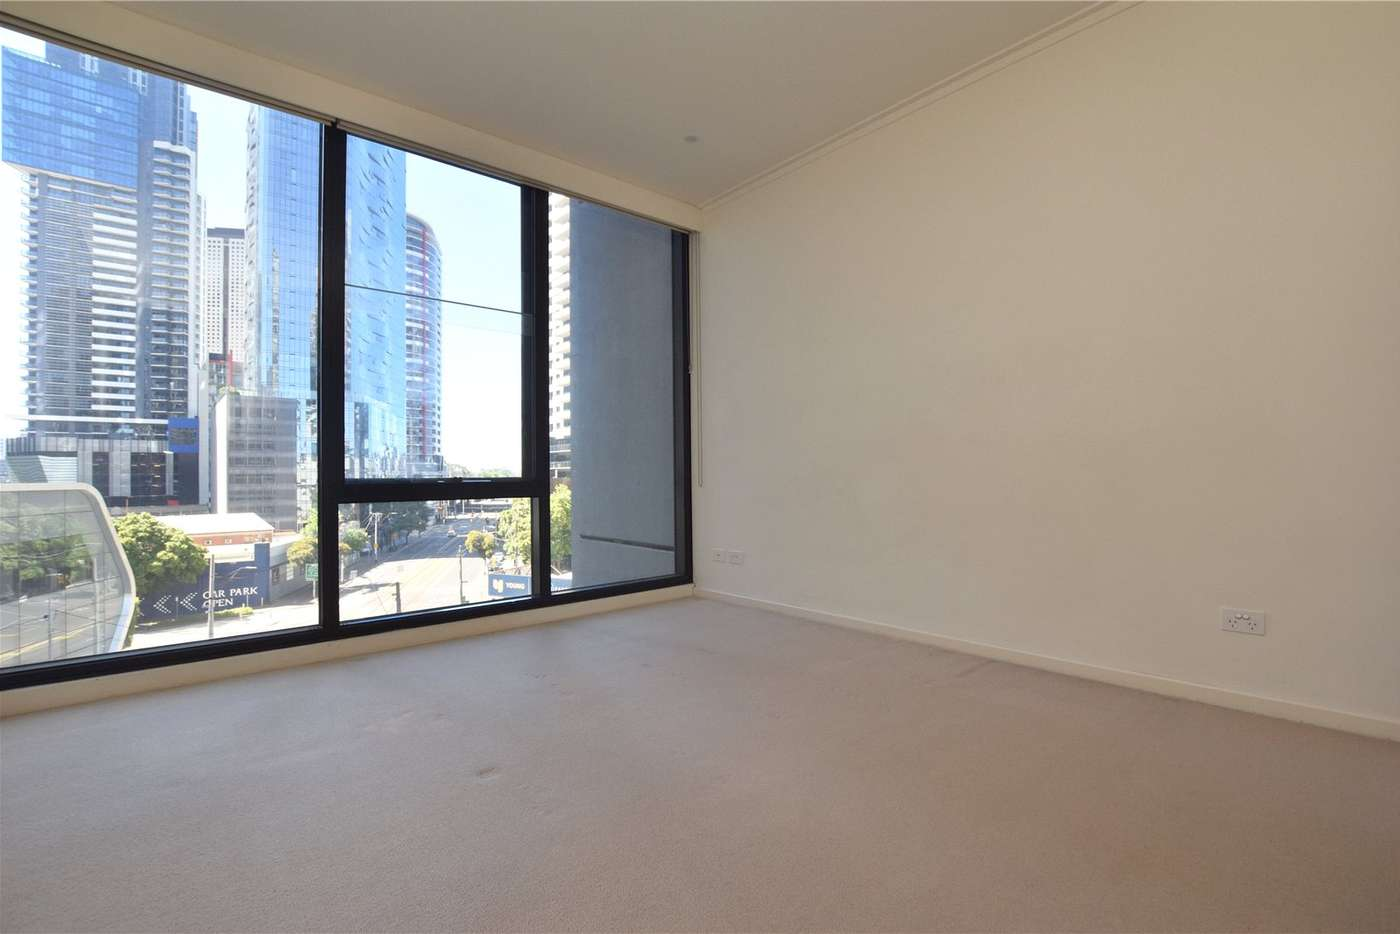 Sixth view of Homely apartment listing, 8/46 Clarendon Street, Southbank VIC 3006